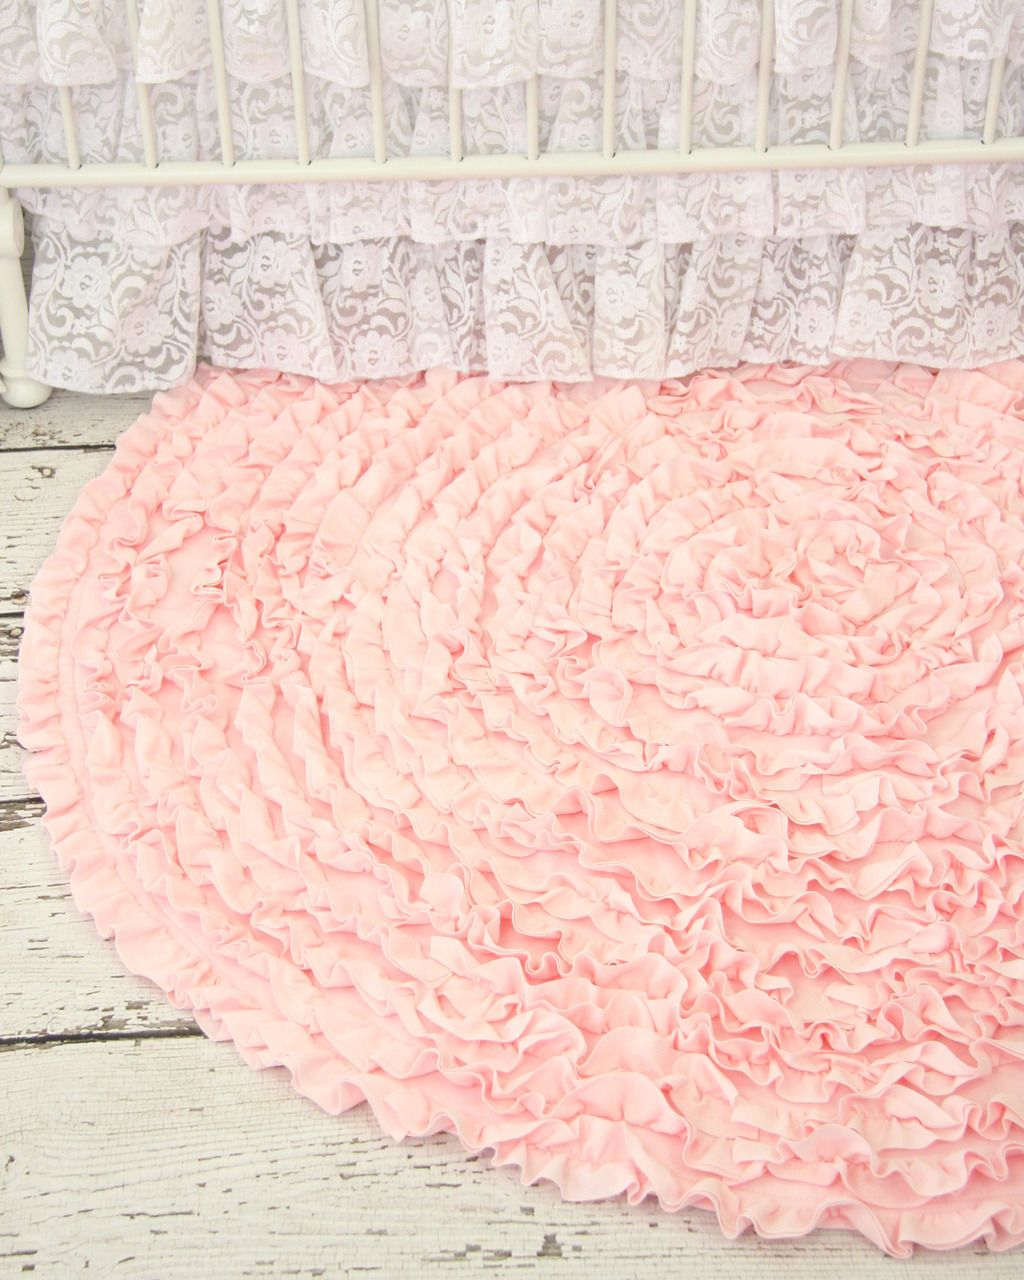 High Quality How Sweet Is This Ruffle Rug For A Pink Vintage Inspired Nursery?